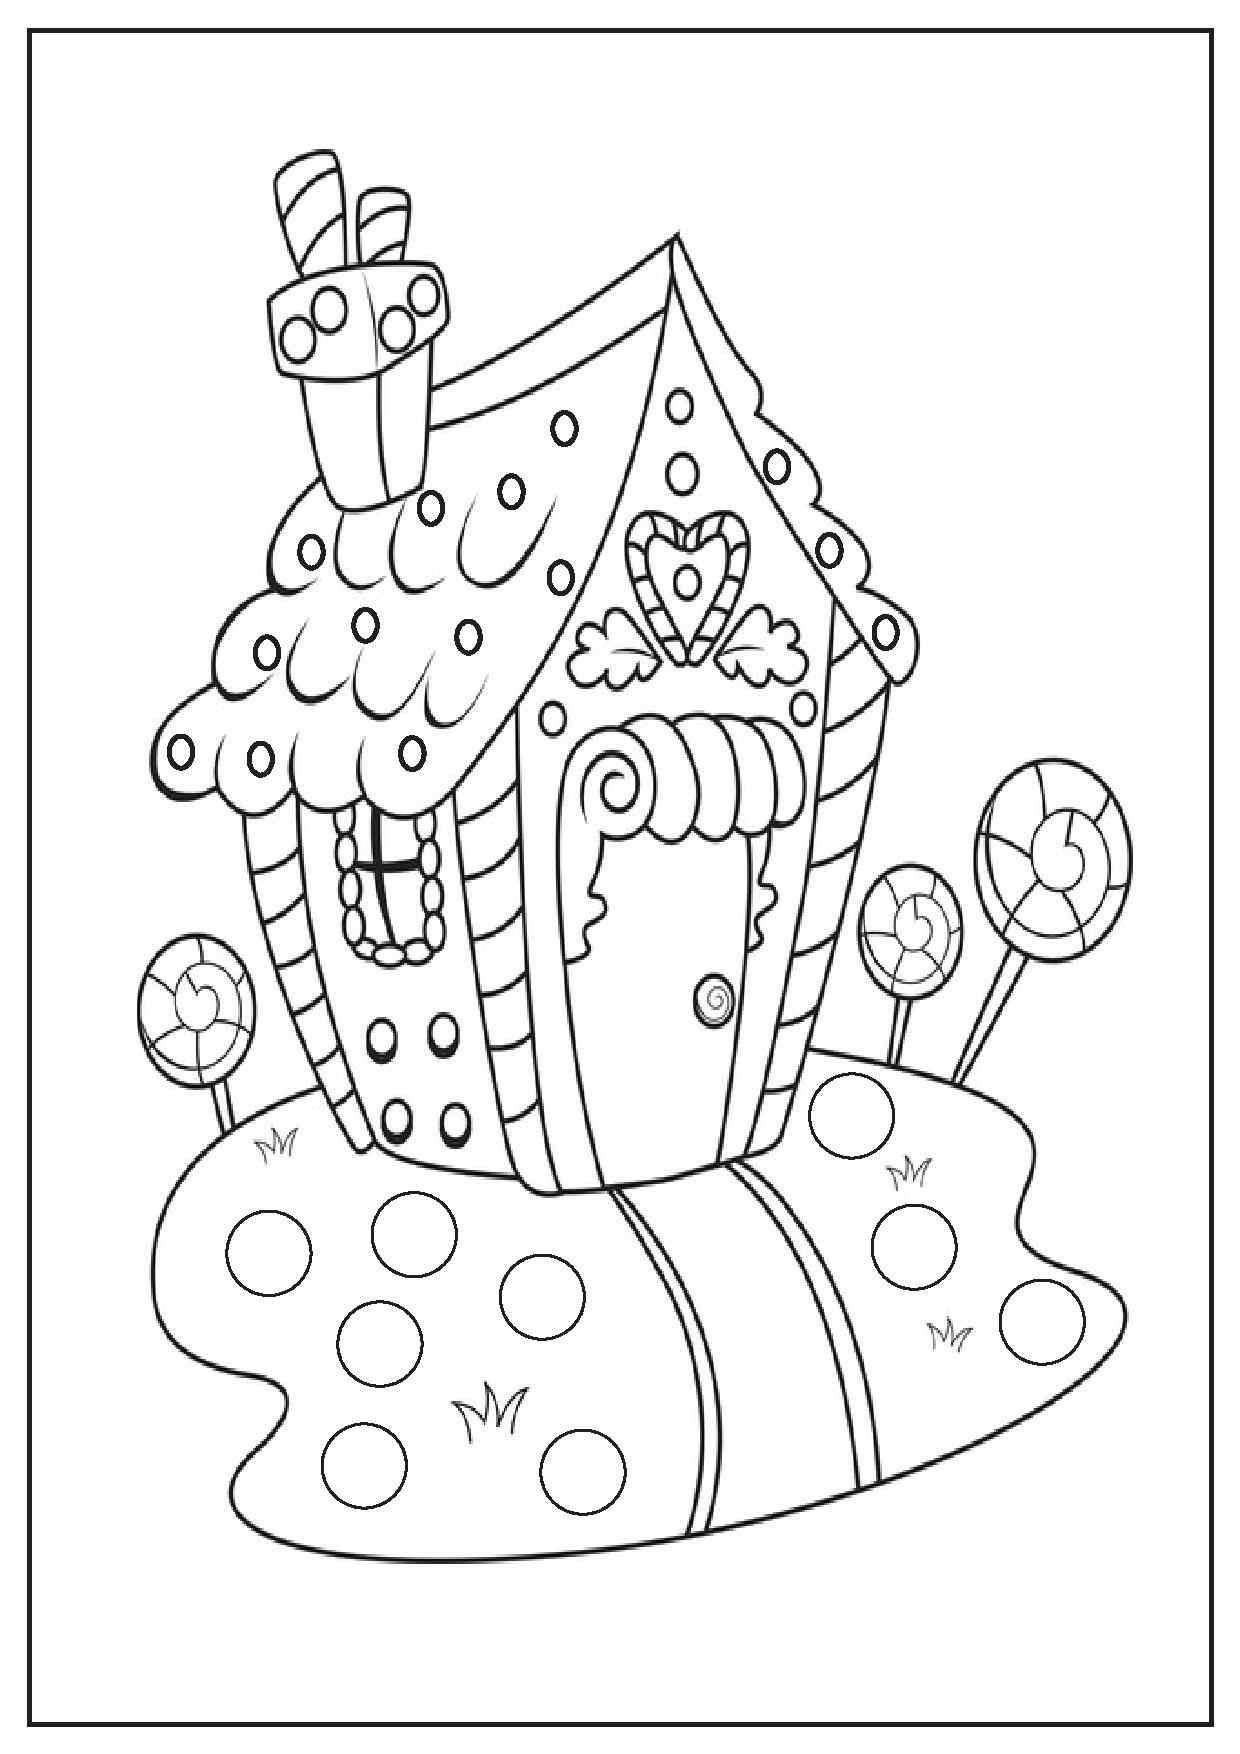 Printable color pages for kindergarten - Kindergarten Coloring Sheets Only Coloring Pages